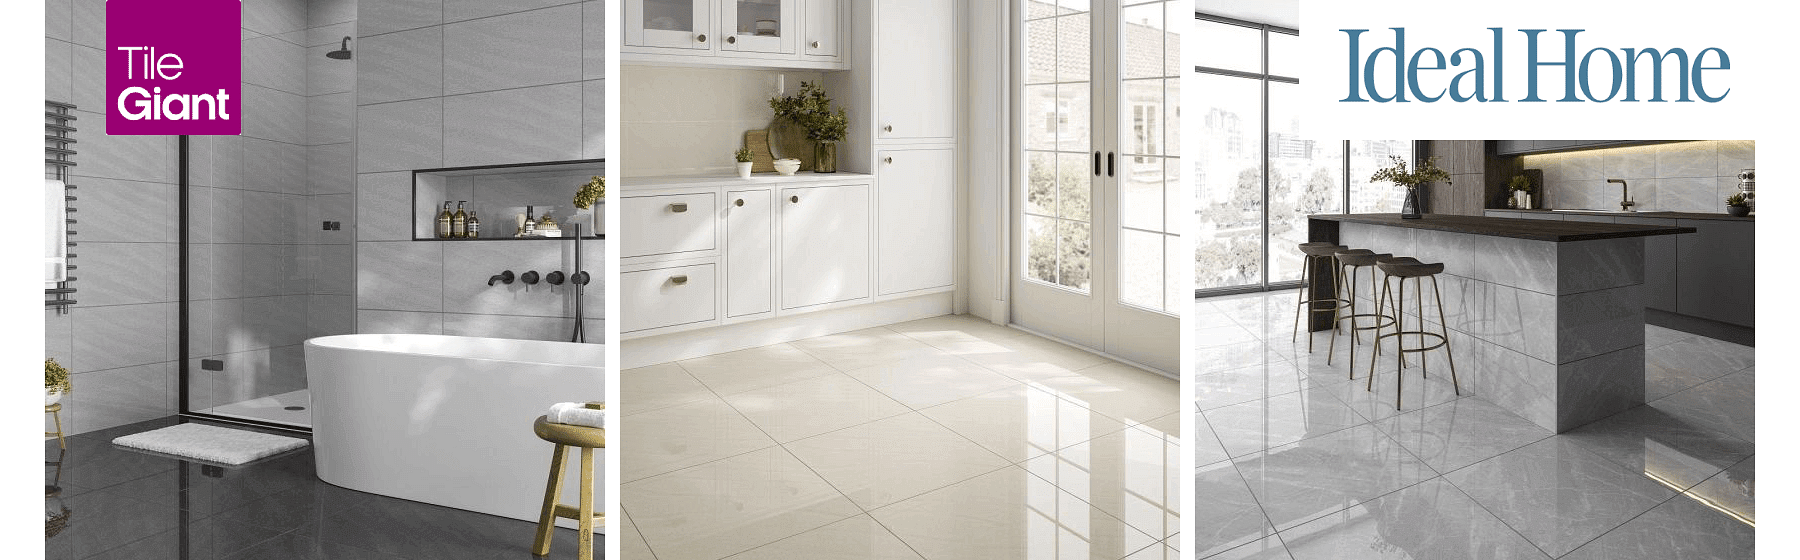 Ideal Home at Tile Giant